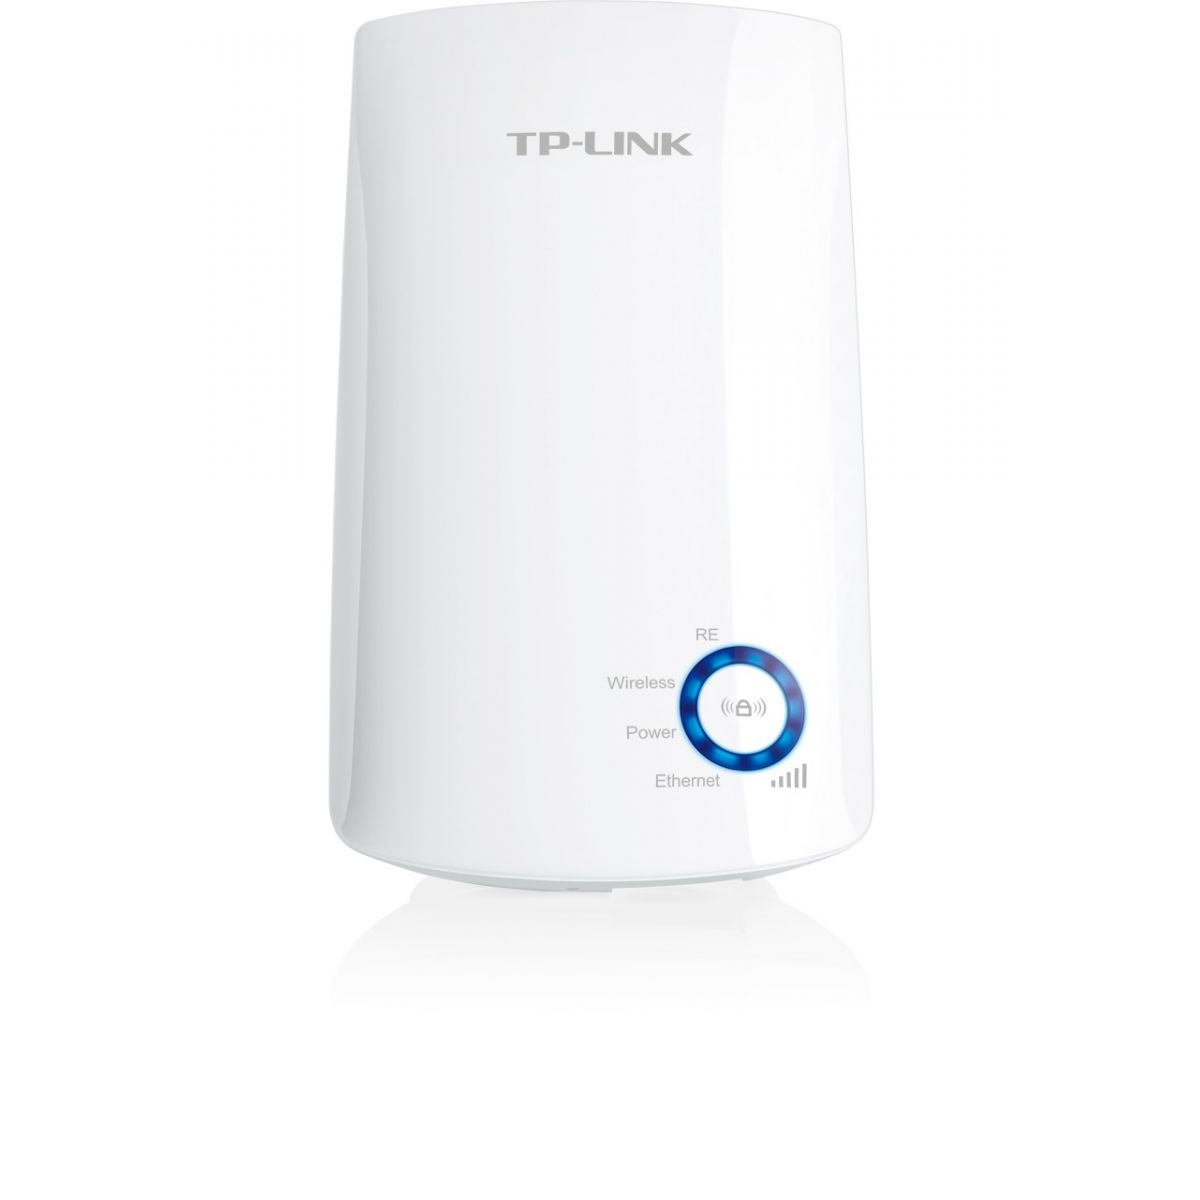 Extensor de Alcance Wireless TP-LINK 2.4 TL-WA850RE